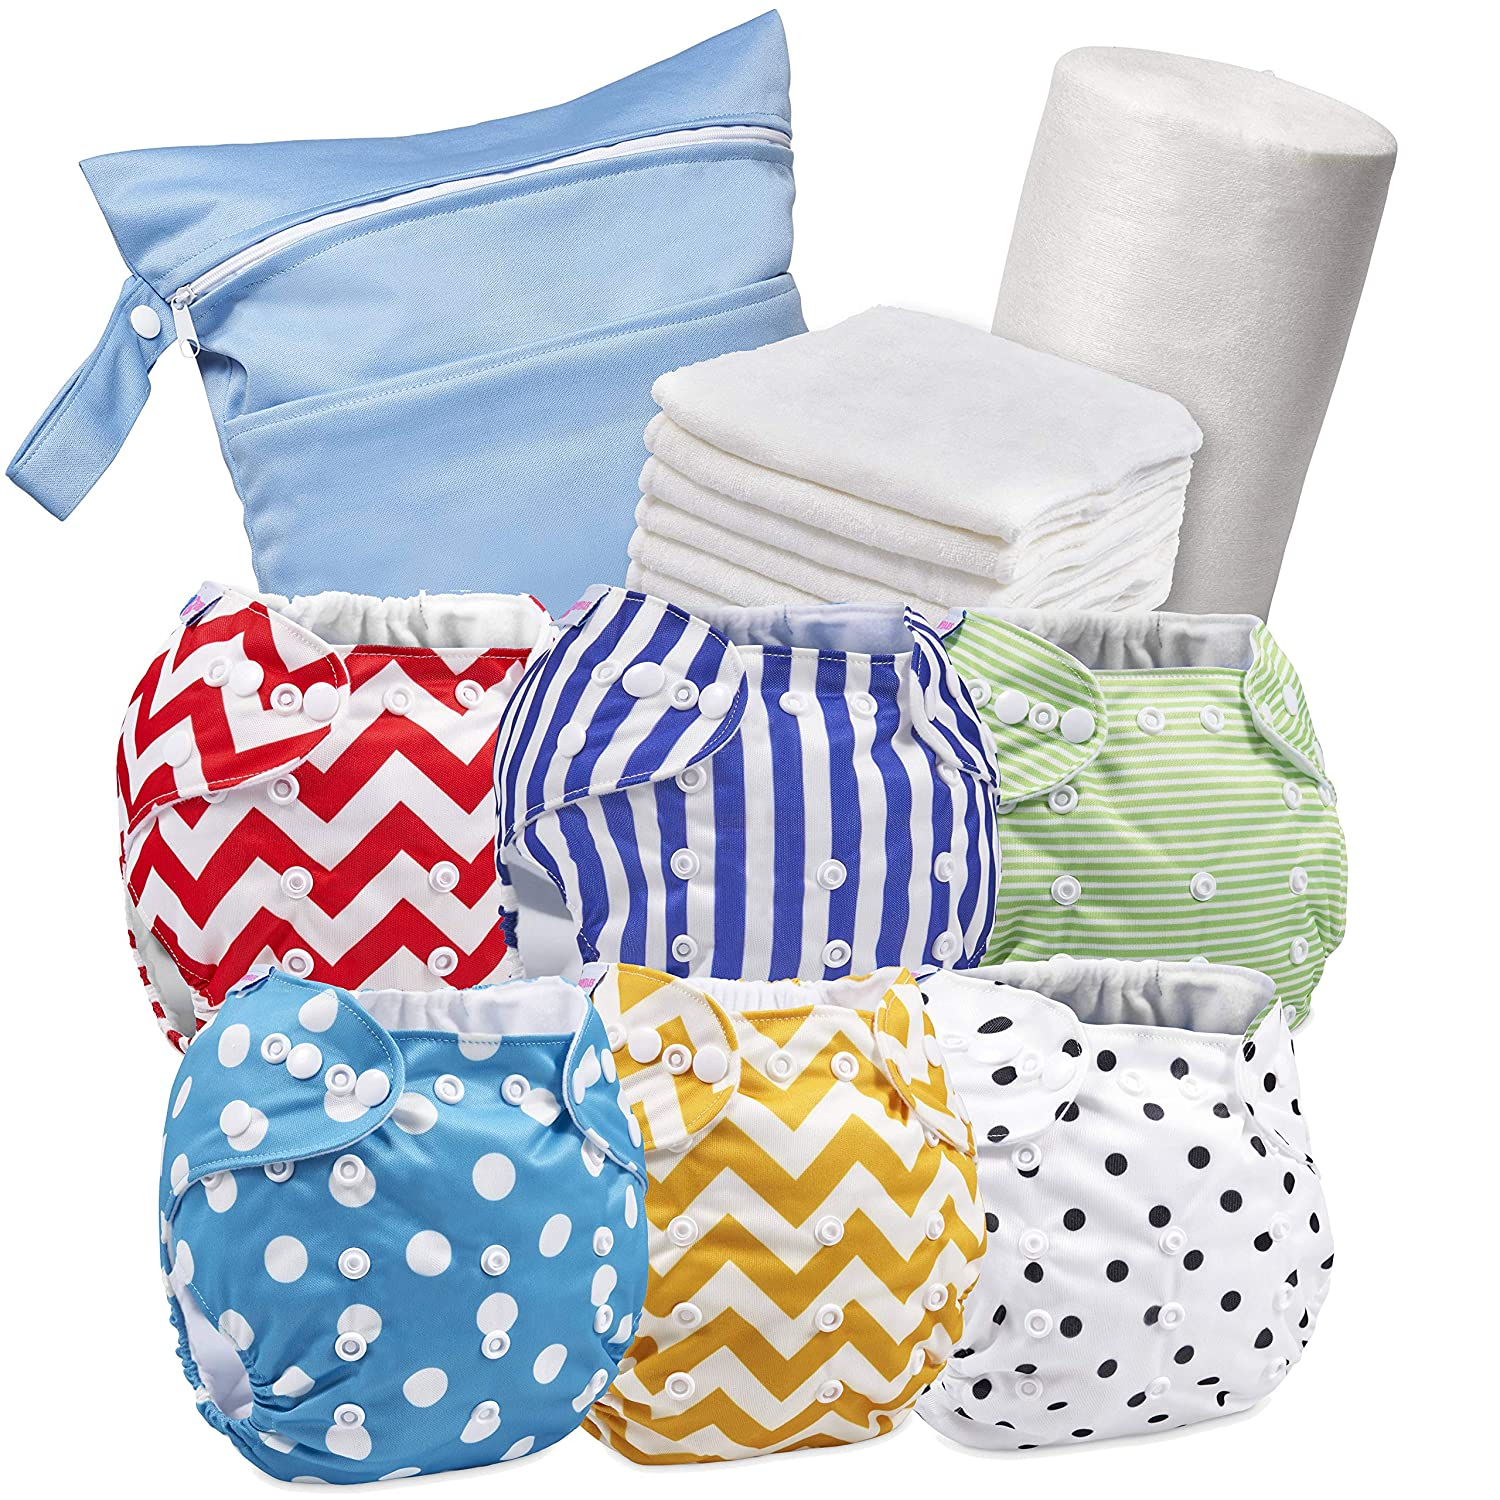 Biodegradable Cloth Nappy Diaper Flushable Disposable Liners Roll Diaper LA Baby Changing & Nappies Nappies